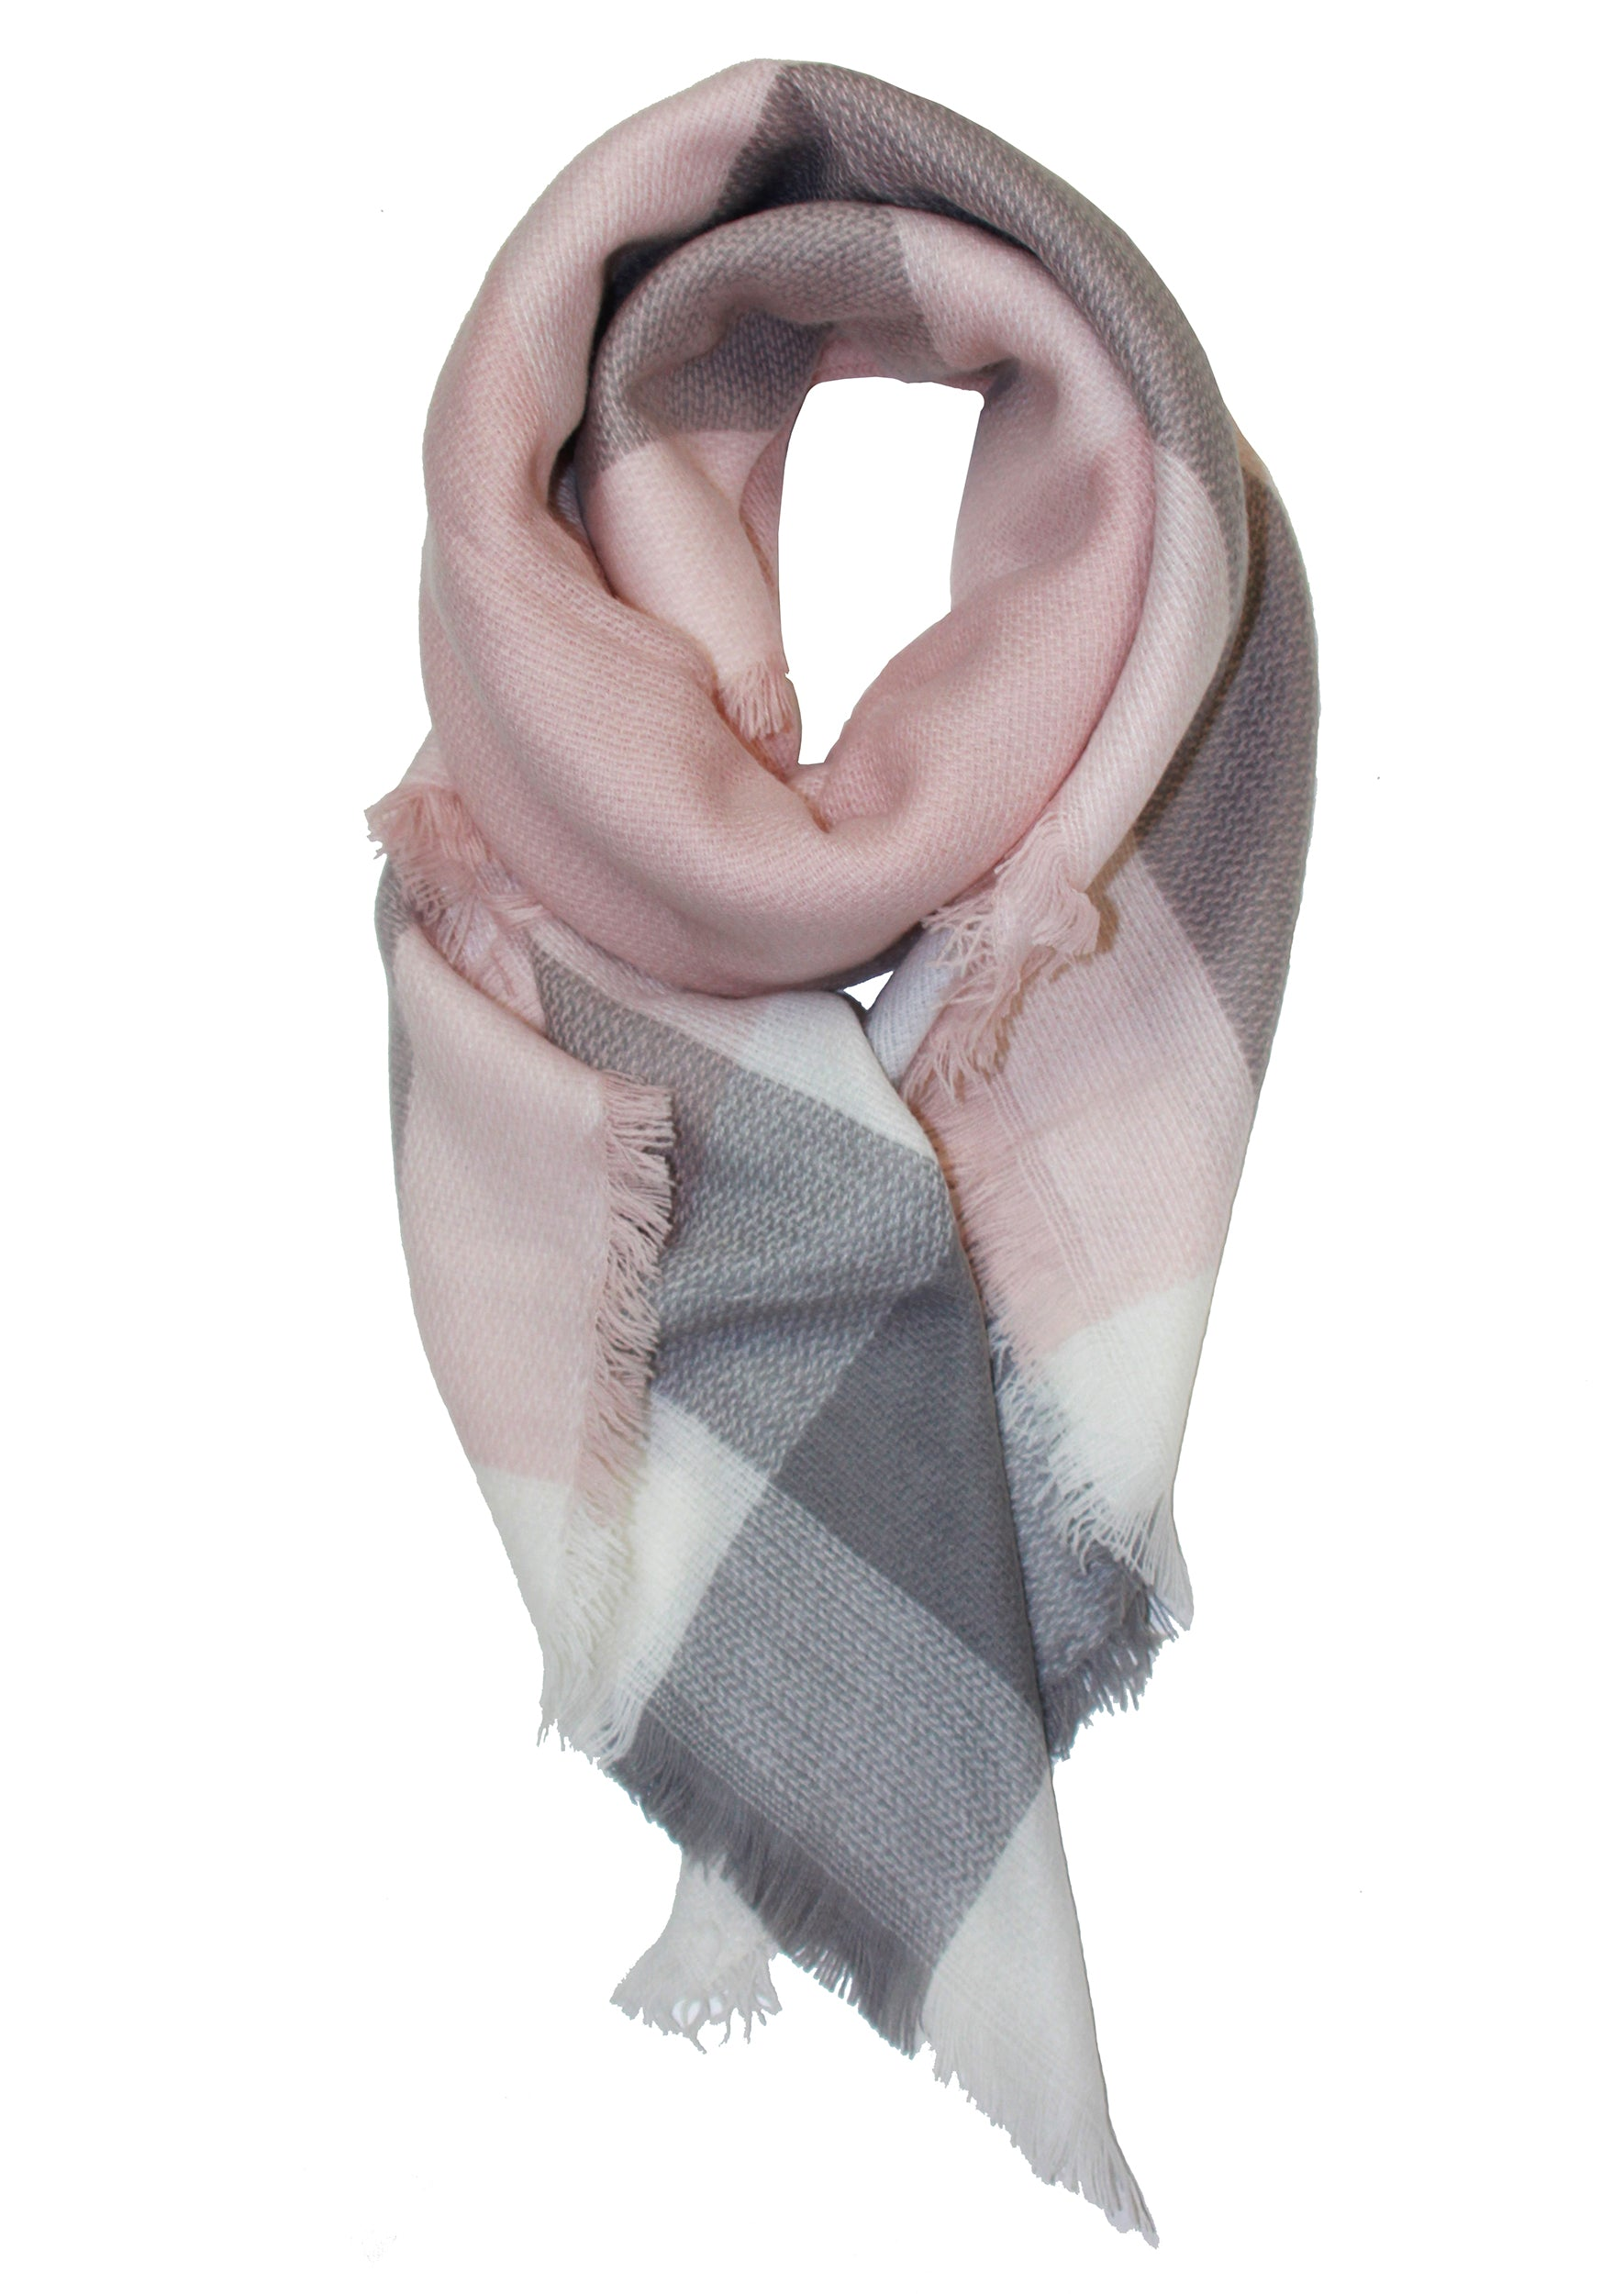 Kate Plaid Scarf - Jules Smith - 14K Gold Plated - Boho Jewelry